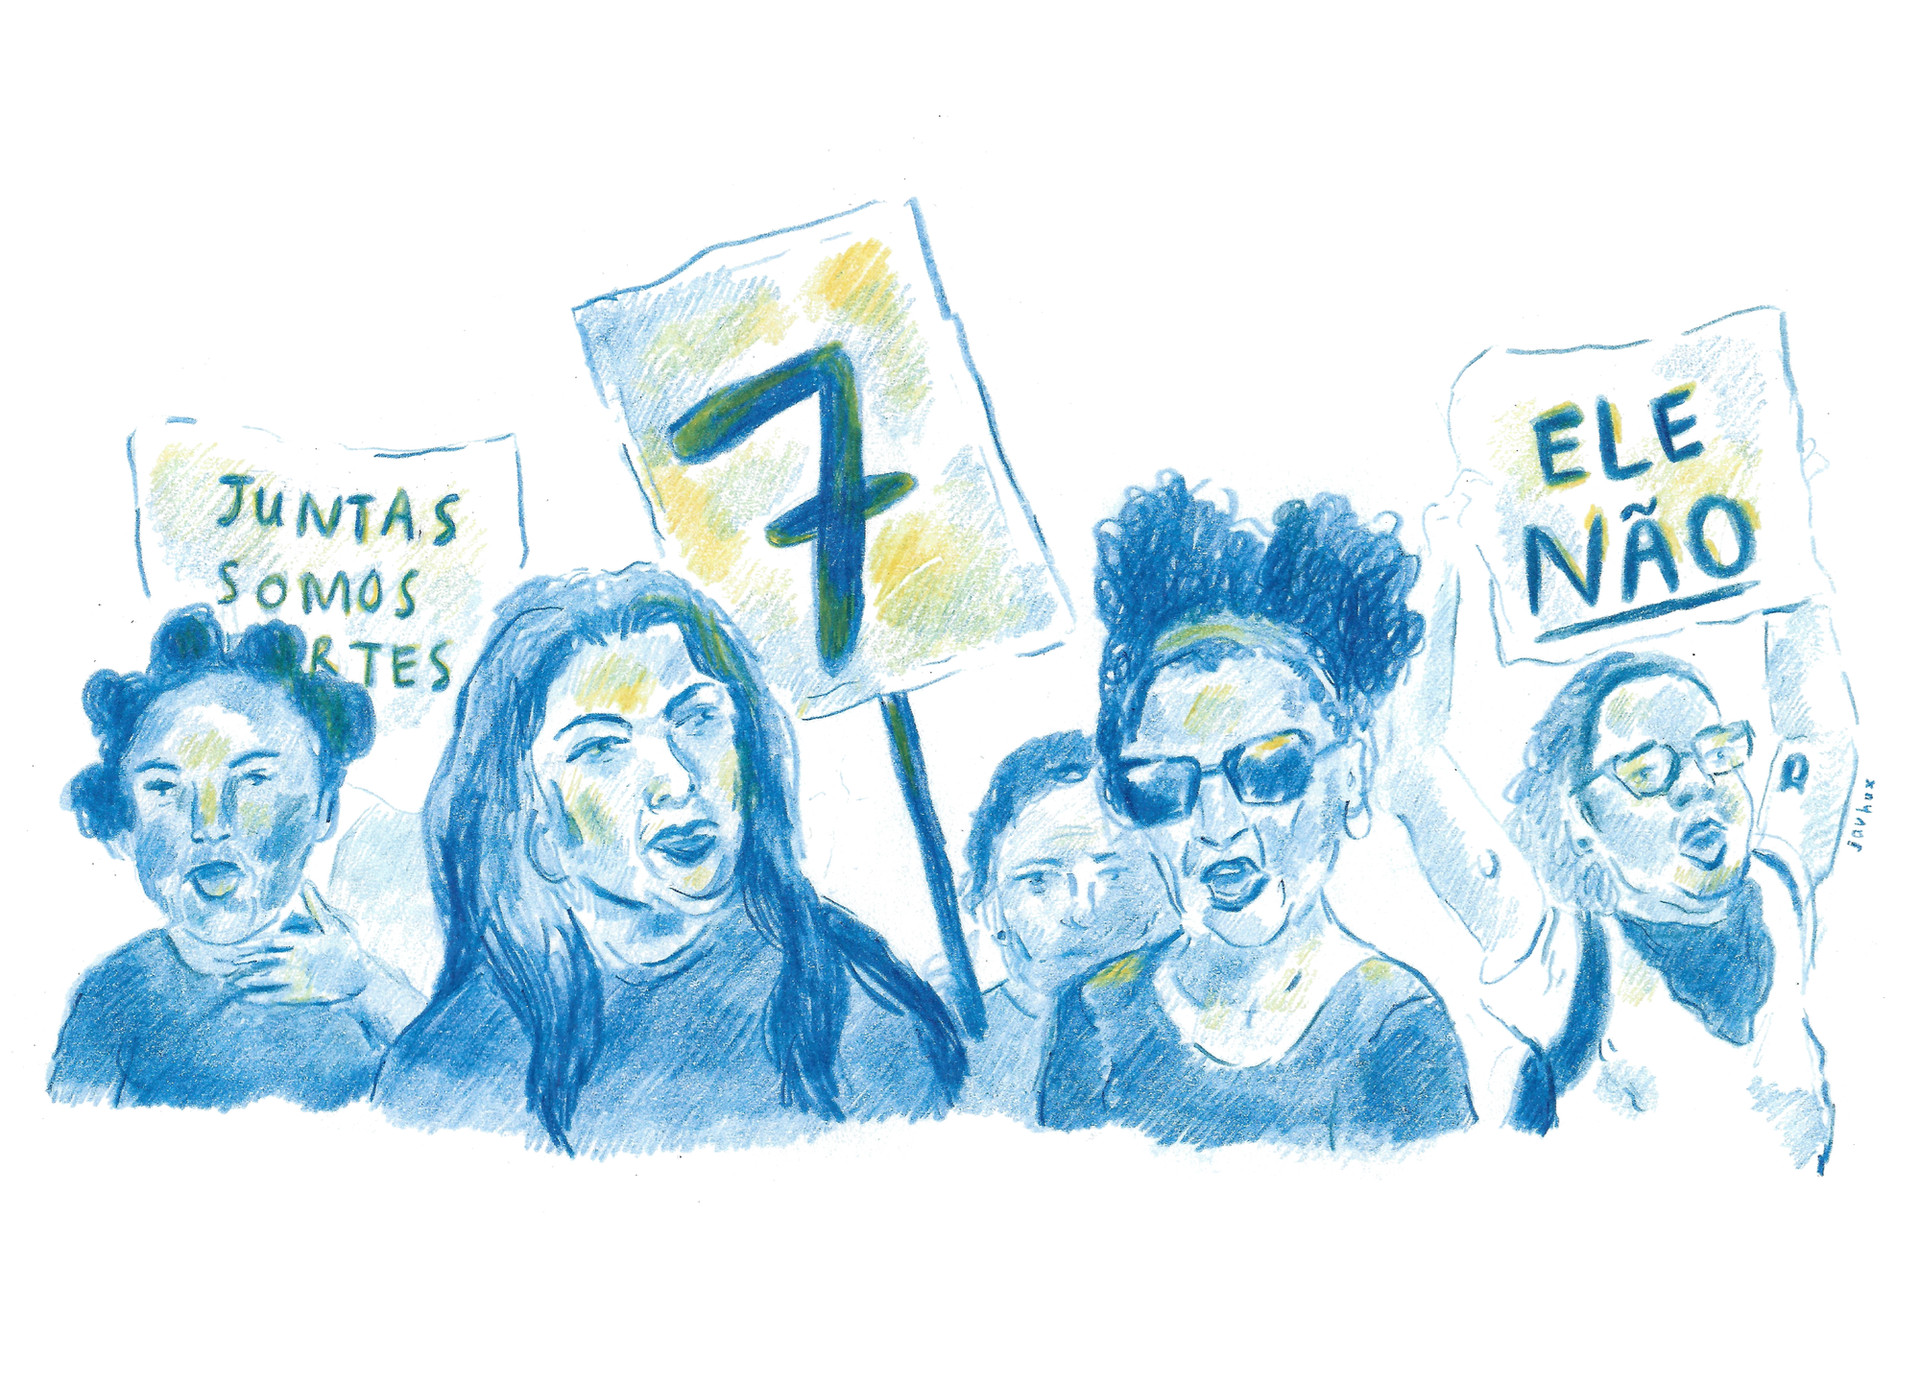 shado mag - 'shado is celebrating the fact that 7 more women got elected to Brazilian Congress this year. The world paid close attention to the US midterms, but this positive statistic got lost [. . .]'